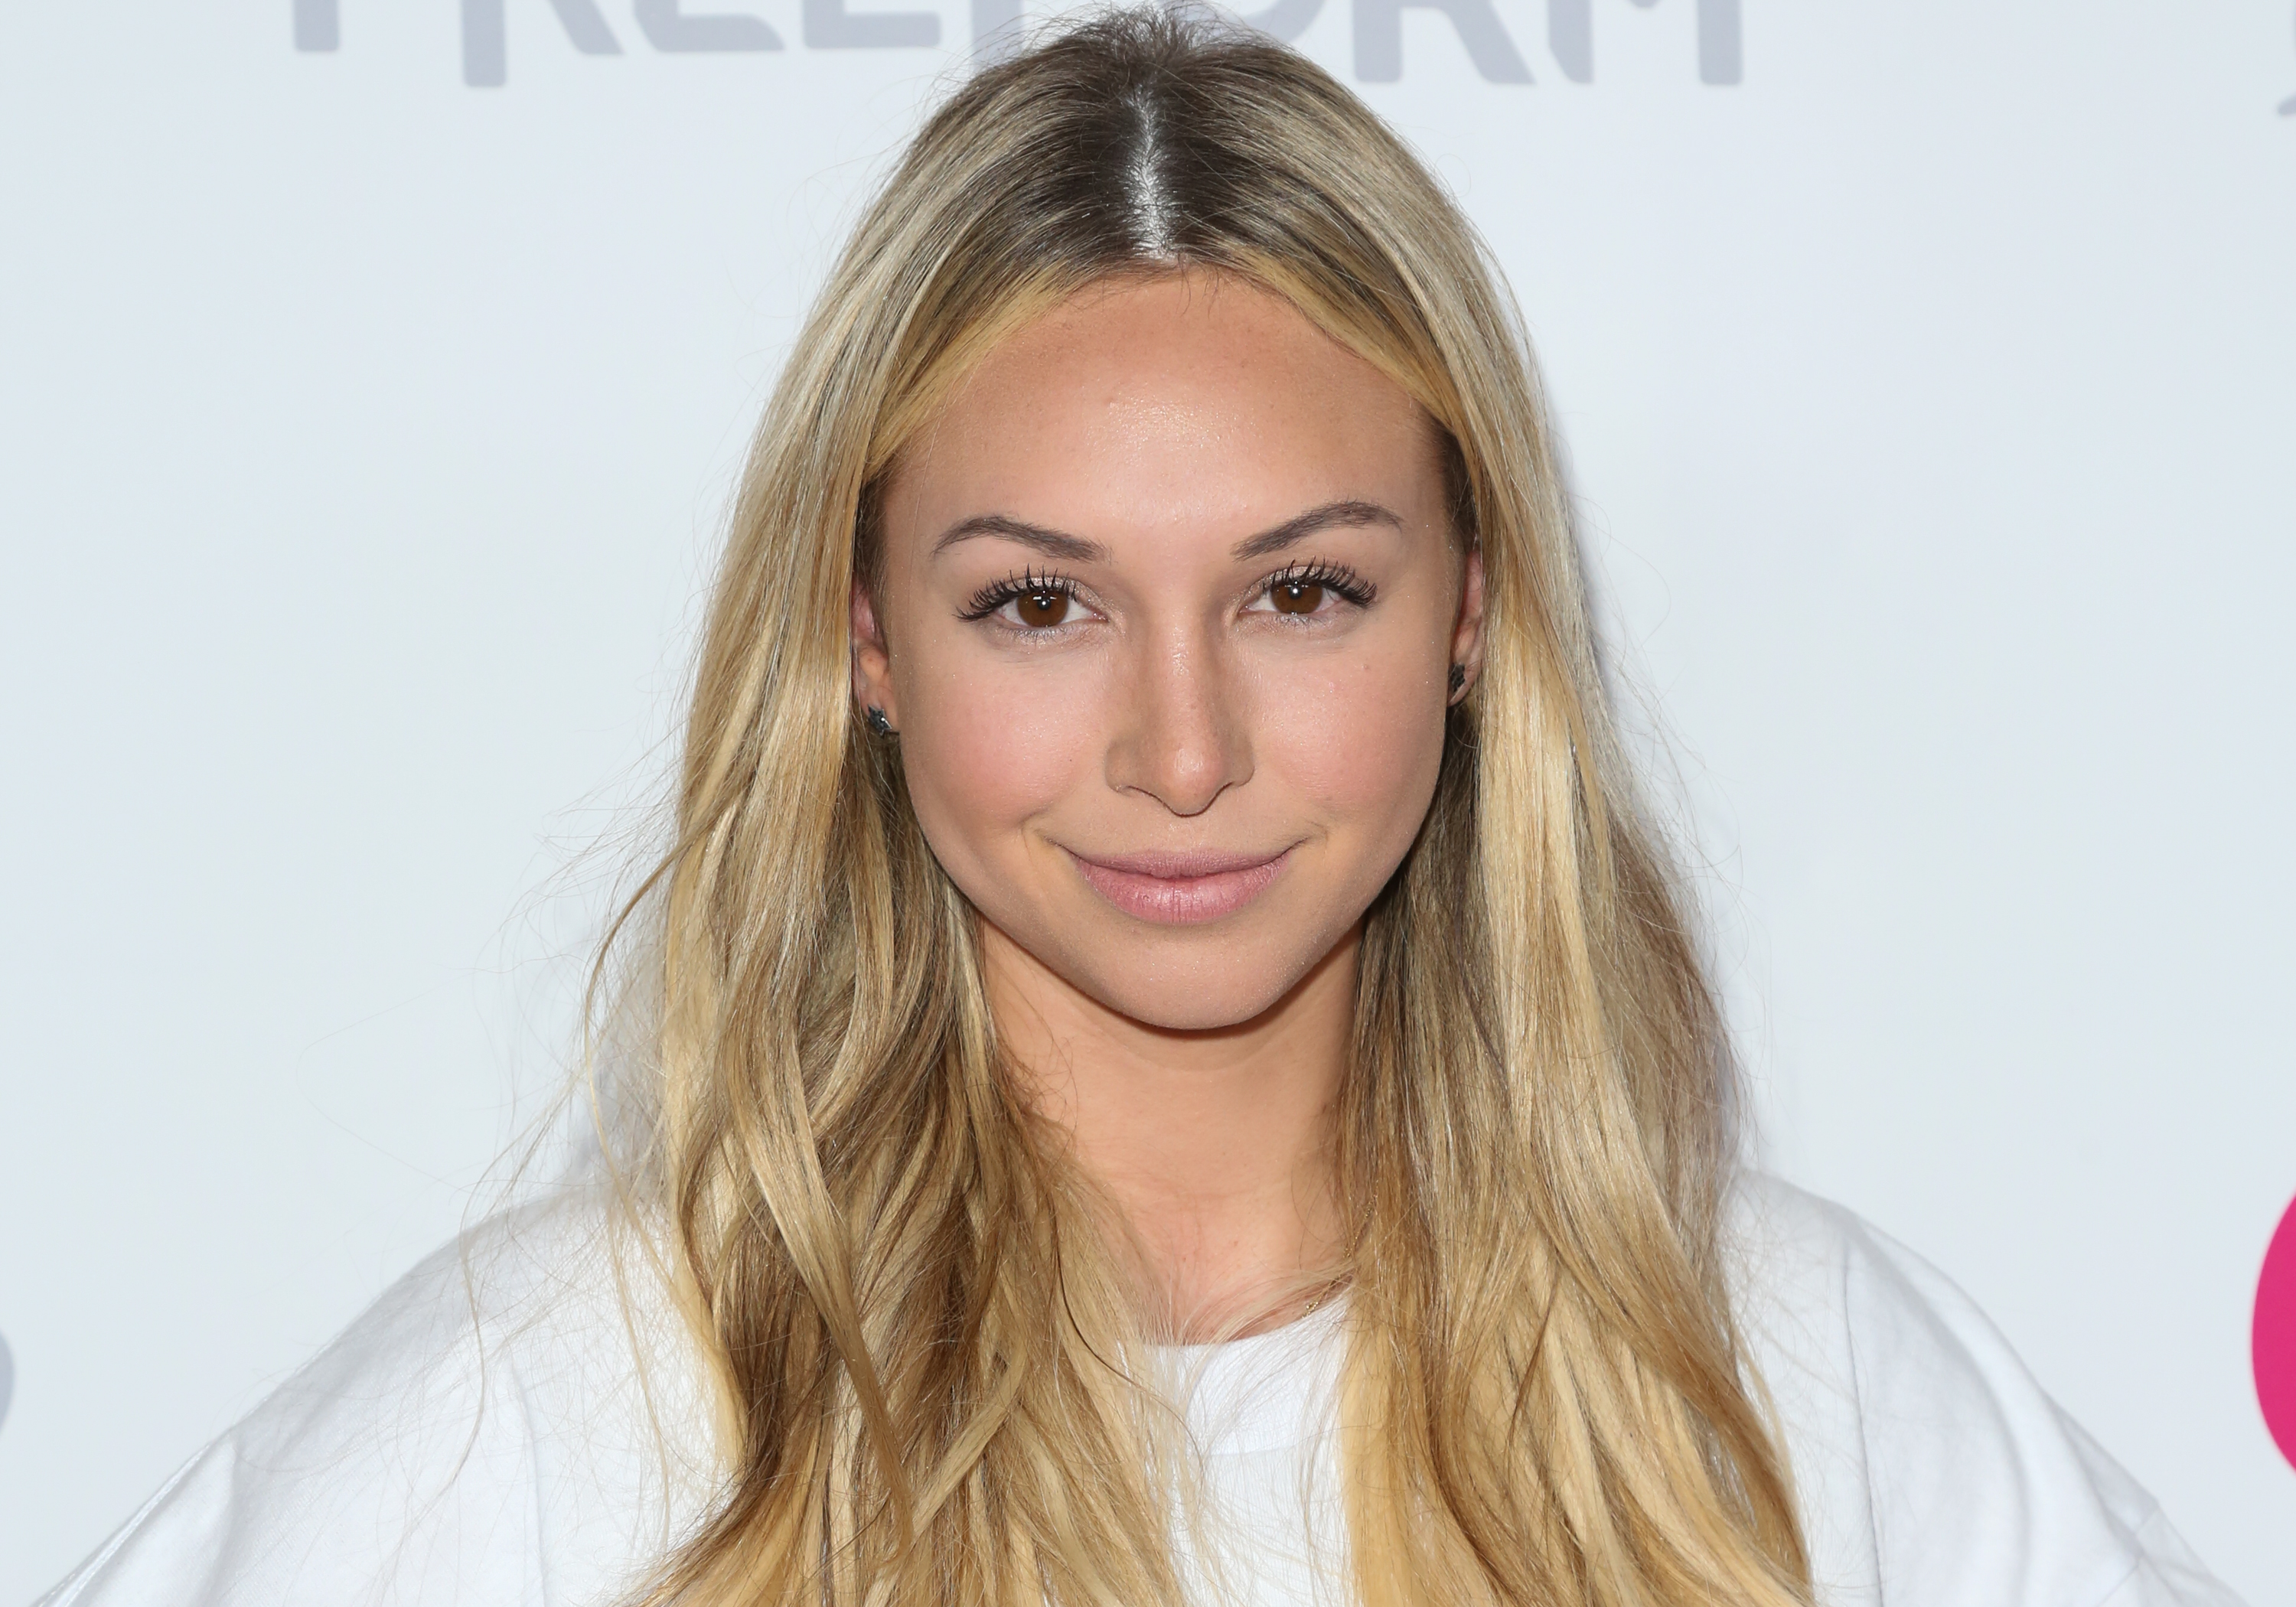 Reality TV Personality Corinne Olympios attends OK! Magazine's Summer kick-off party at The W Hollywood on May 17, 2017 in Hollywood, Calif.